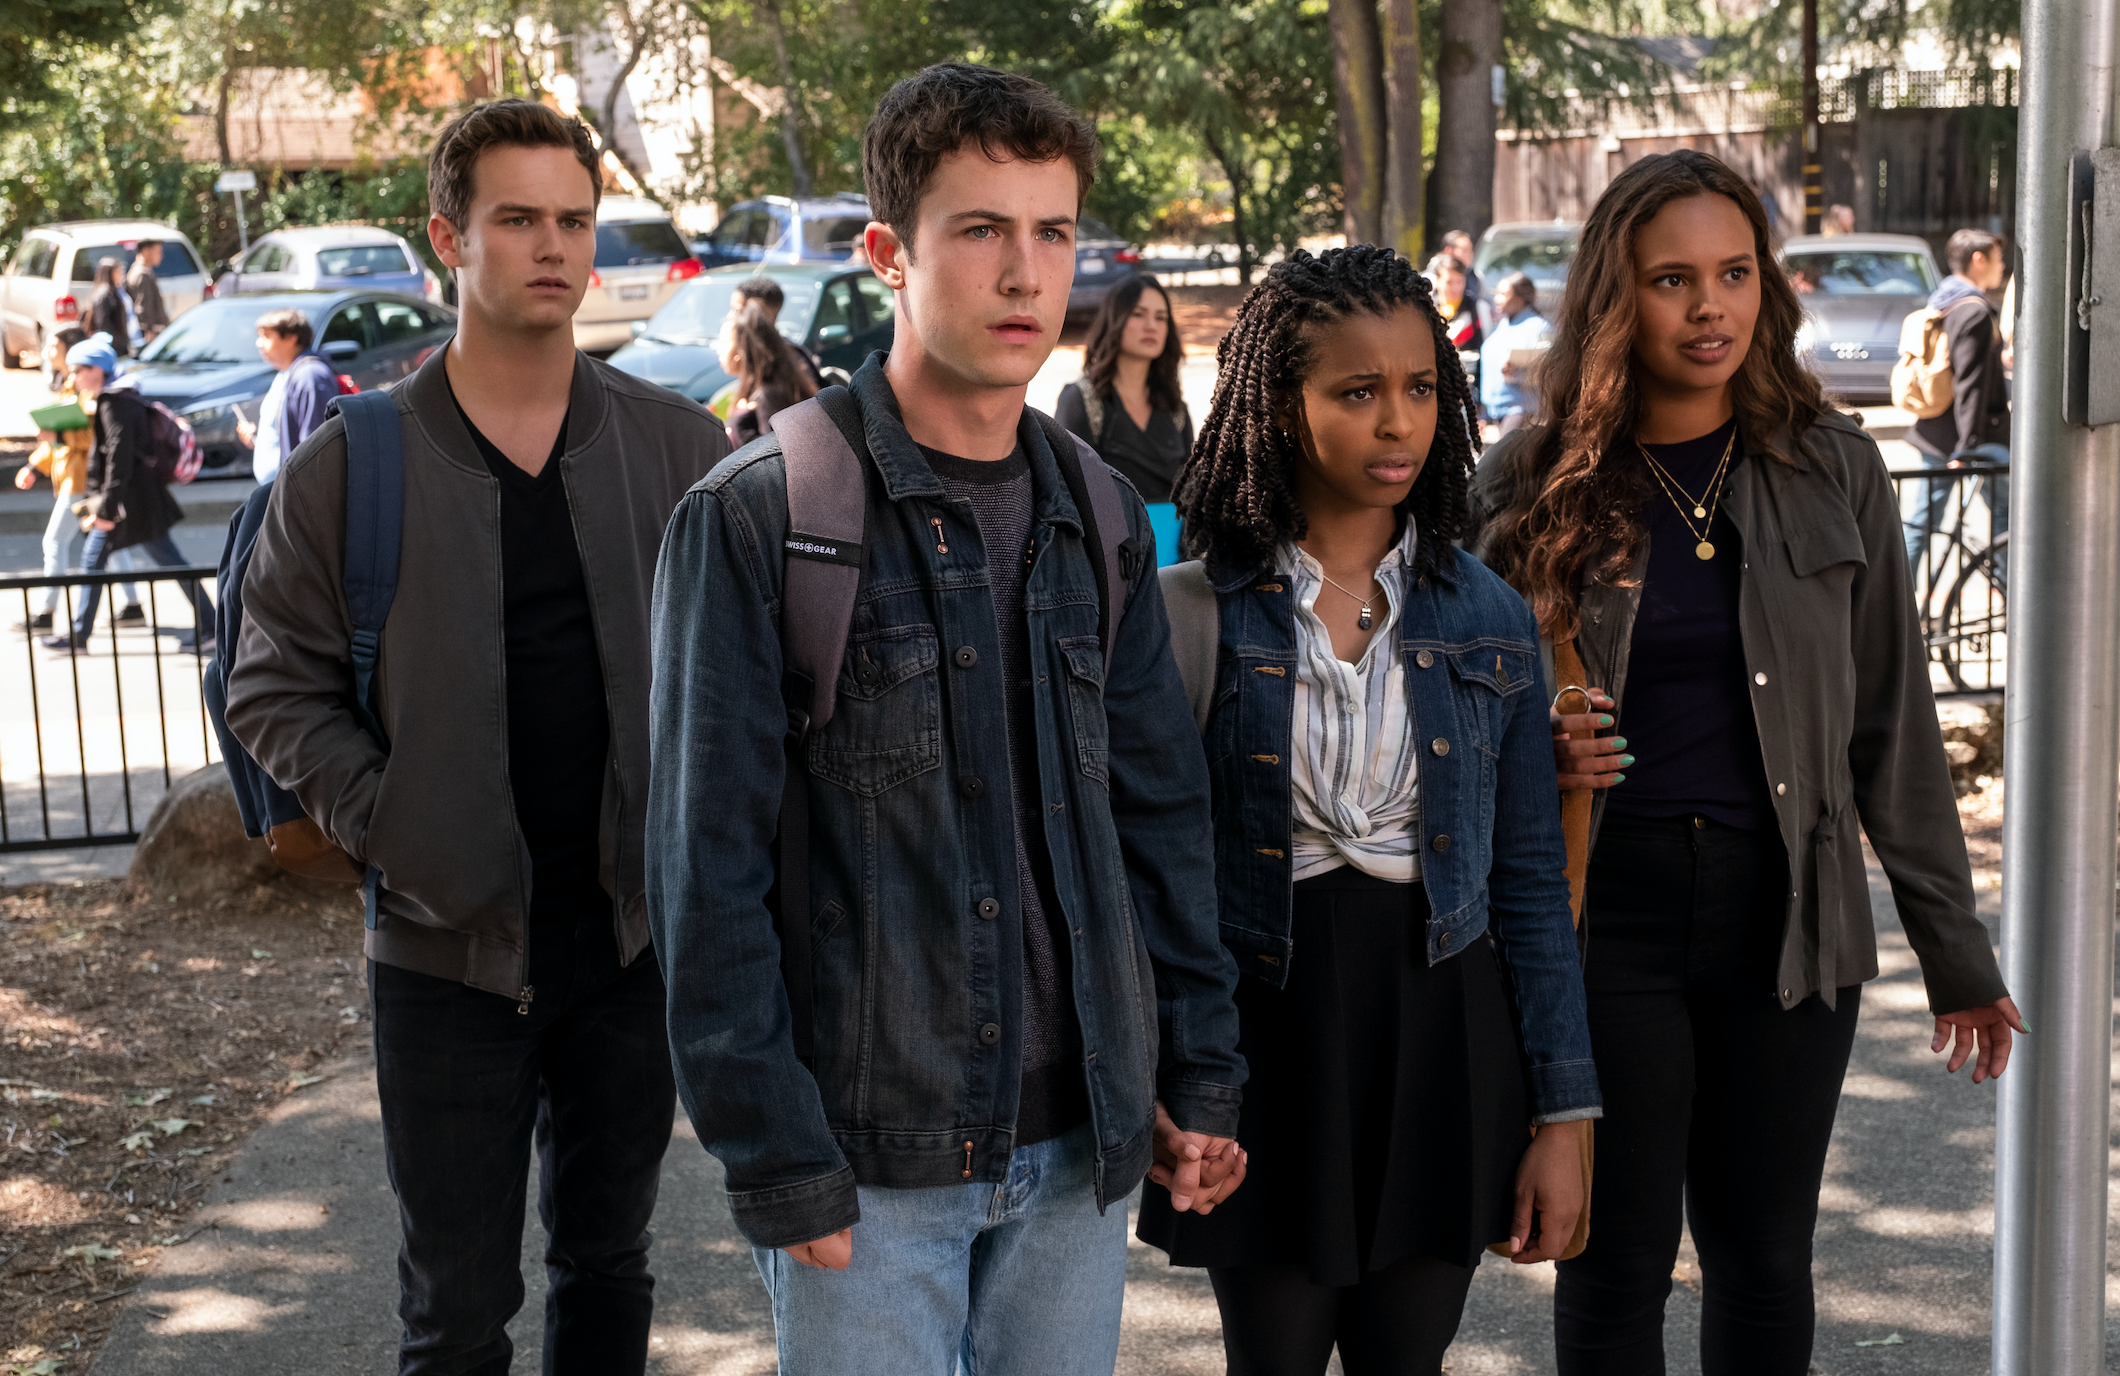 13 Reasons Why' Season 3 Recap - 7 Plot Points To Remember Before Season 4